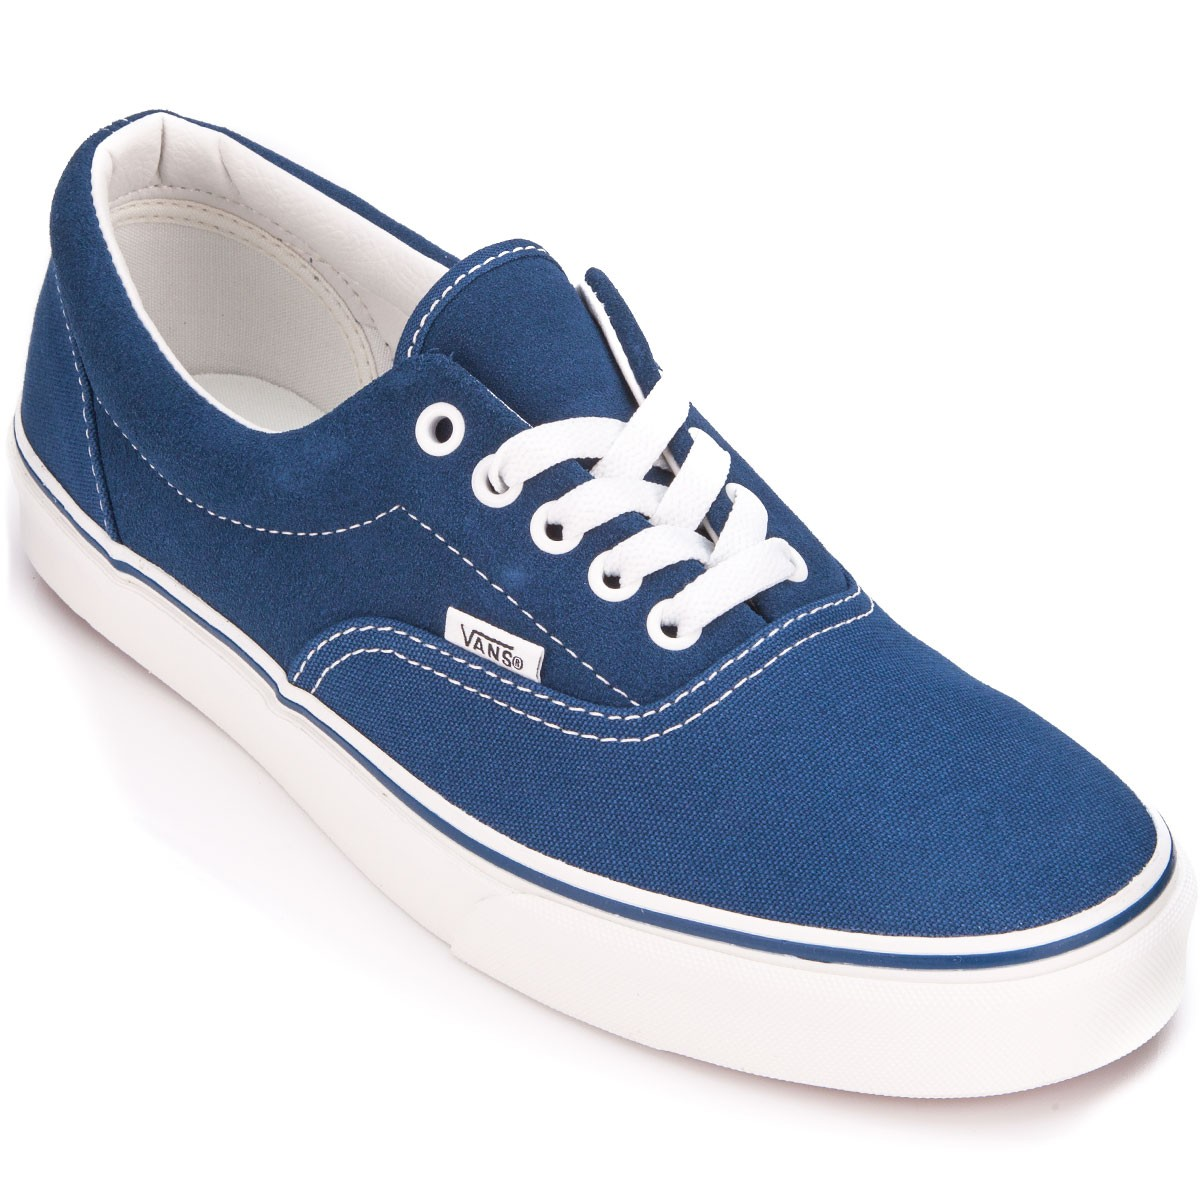 43dcd8676e Vans Era Shoes